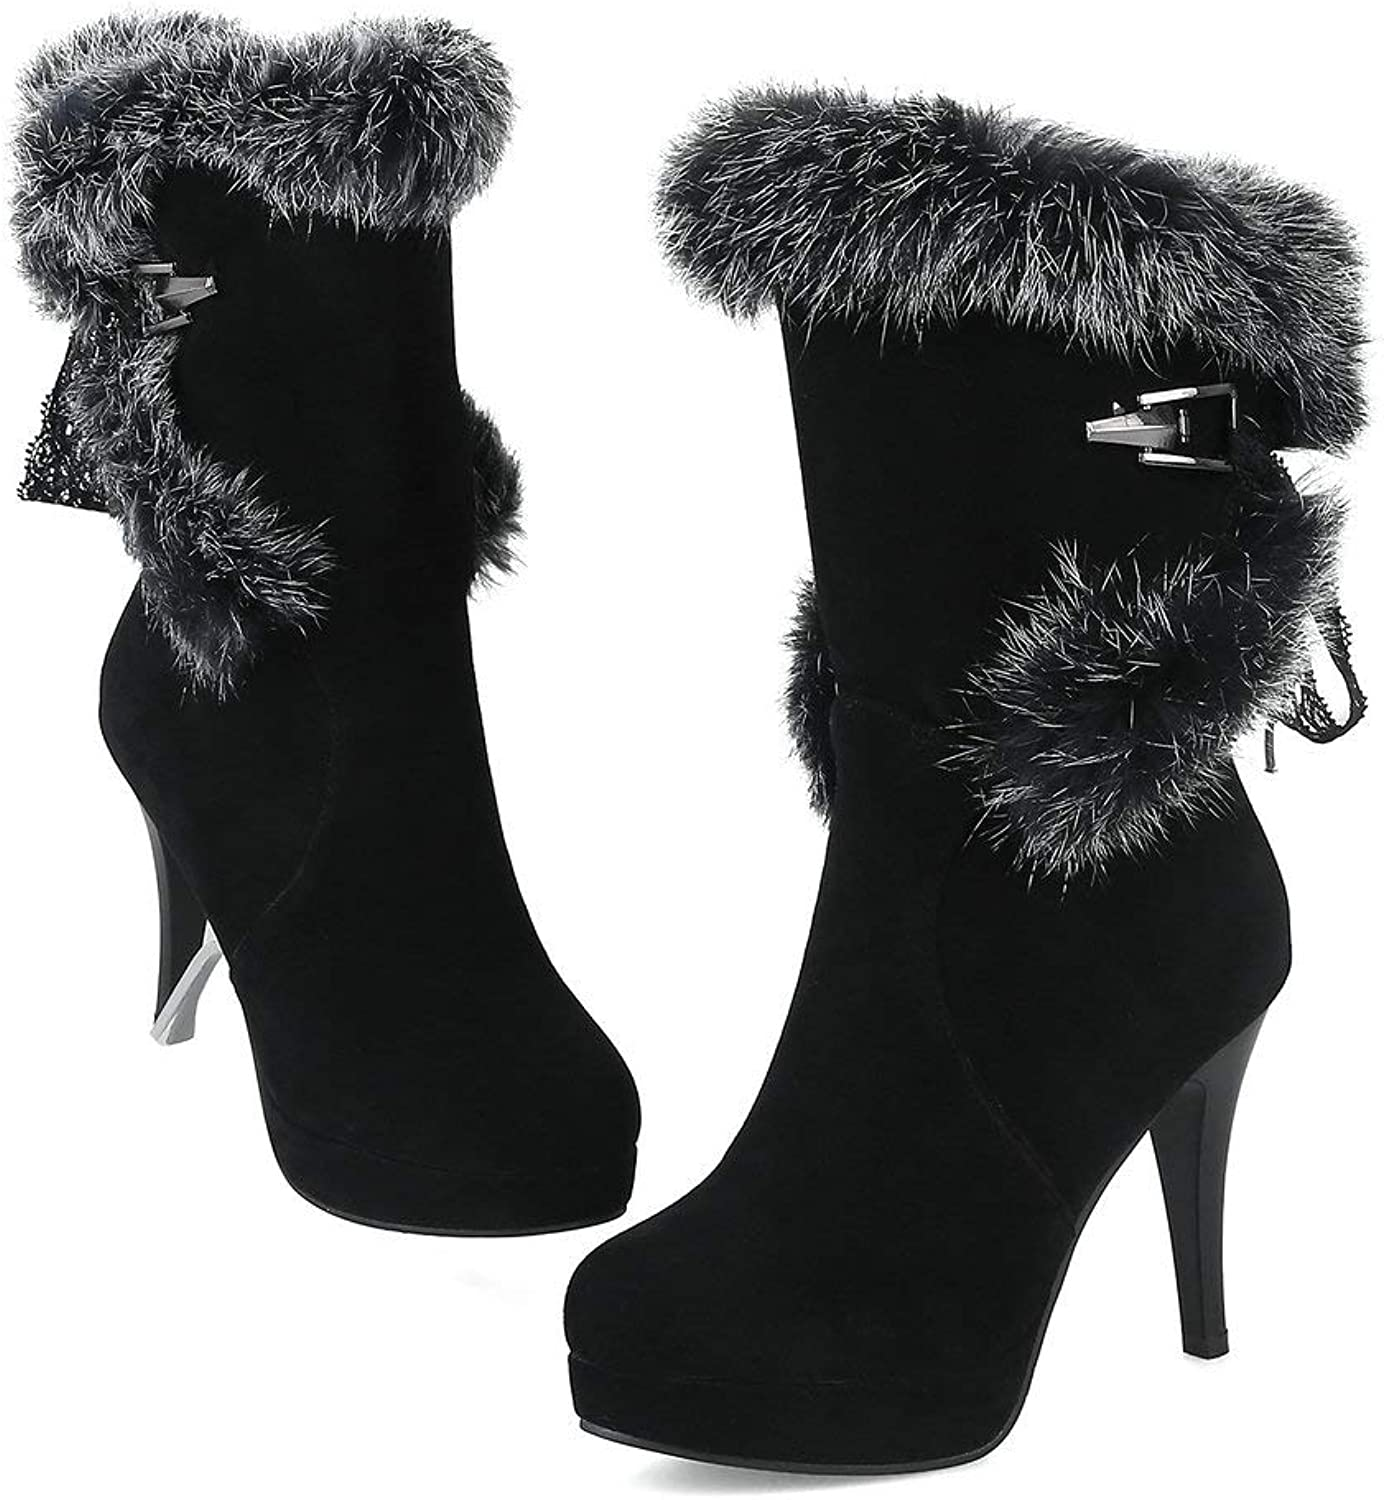 AnMengXinLing Mid Calf Snow Boots Women Sexy Stiletto High Heel Platform Faux Suede Fluffy Fur Round Toe Lace up Winter shoes